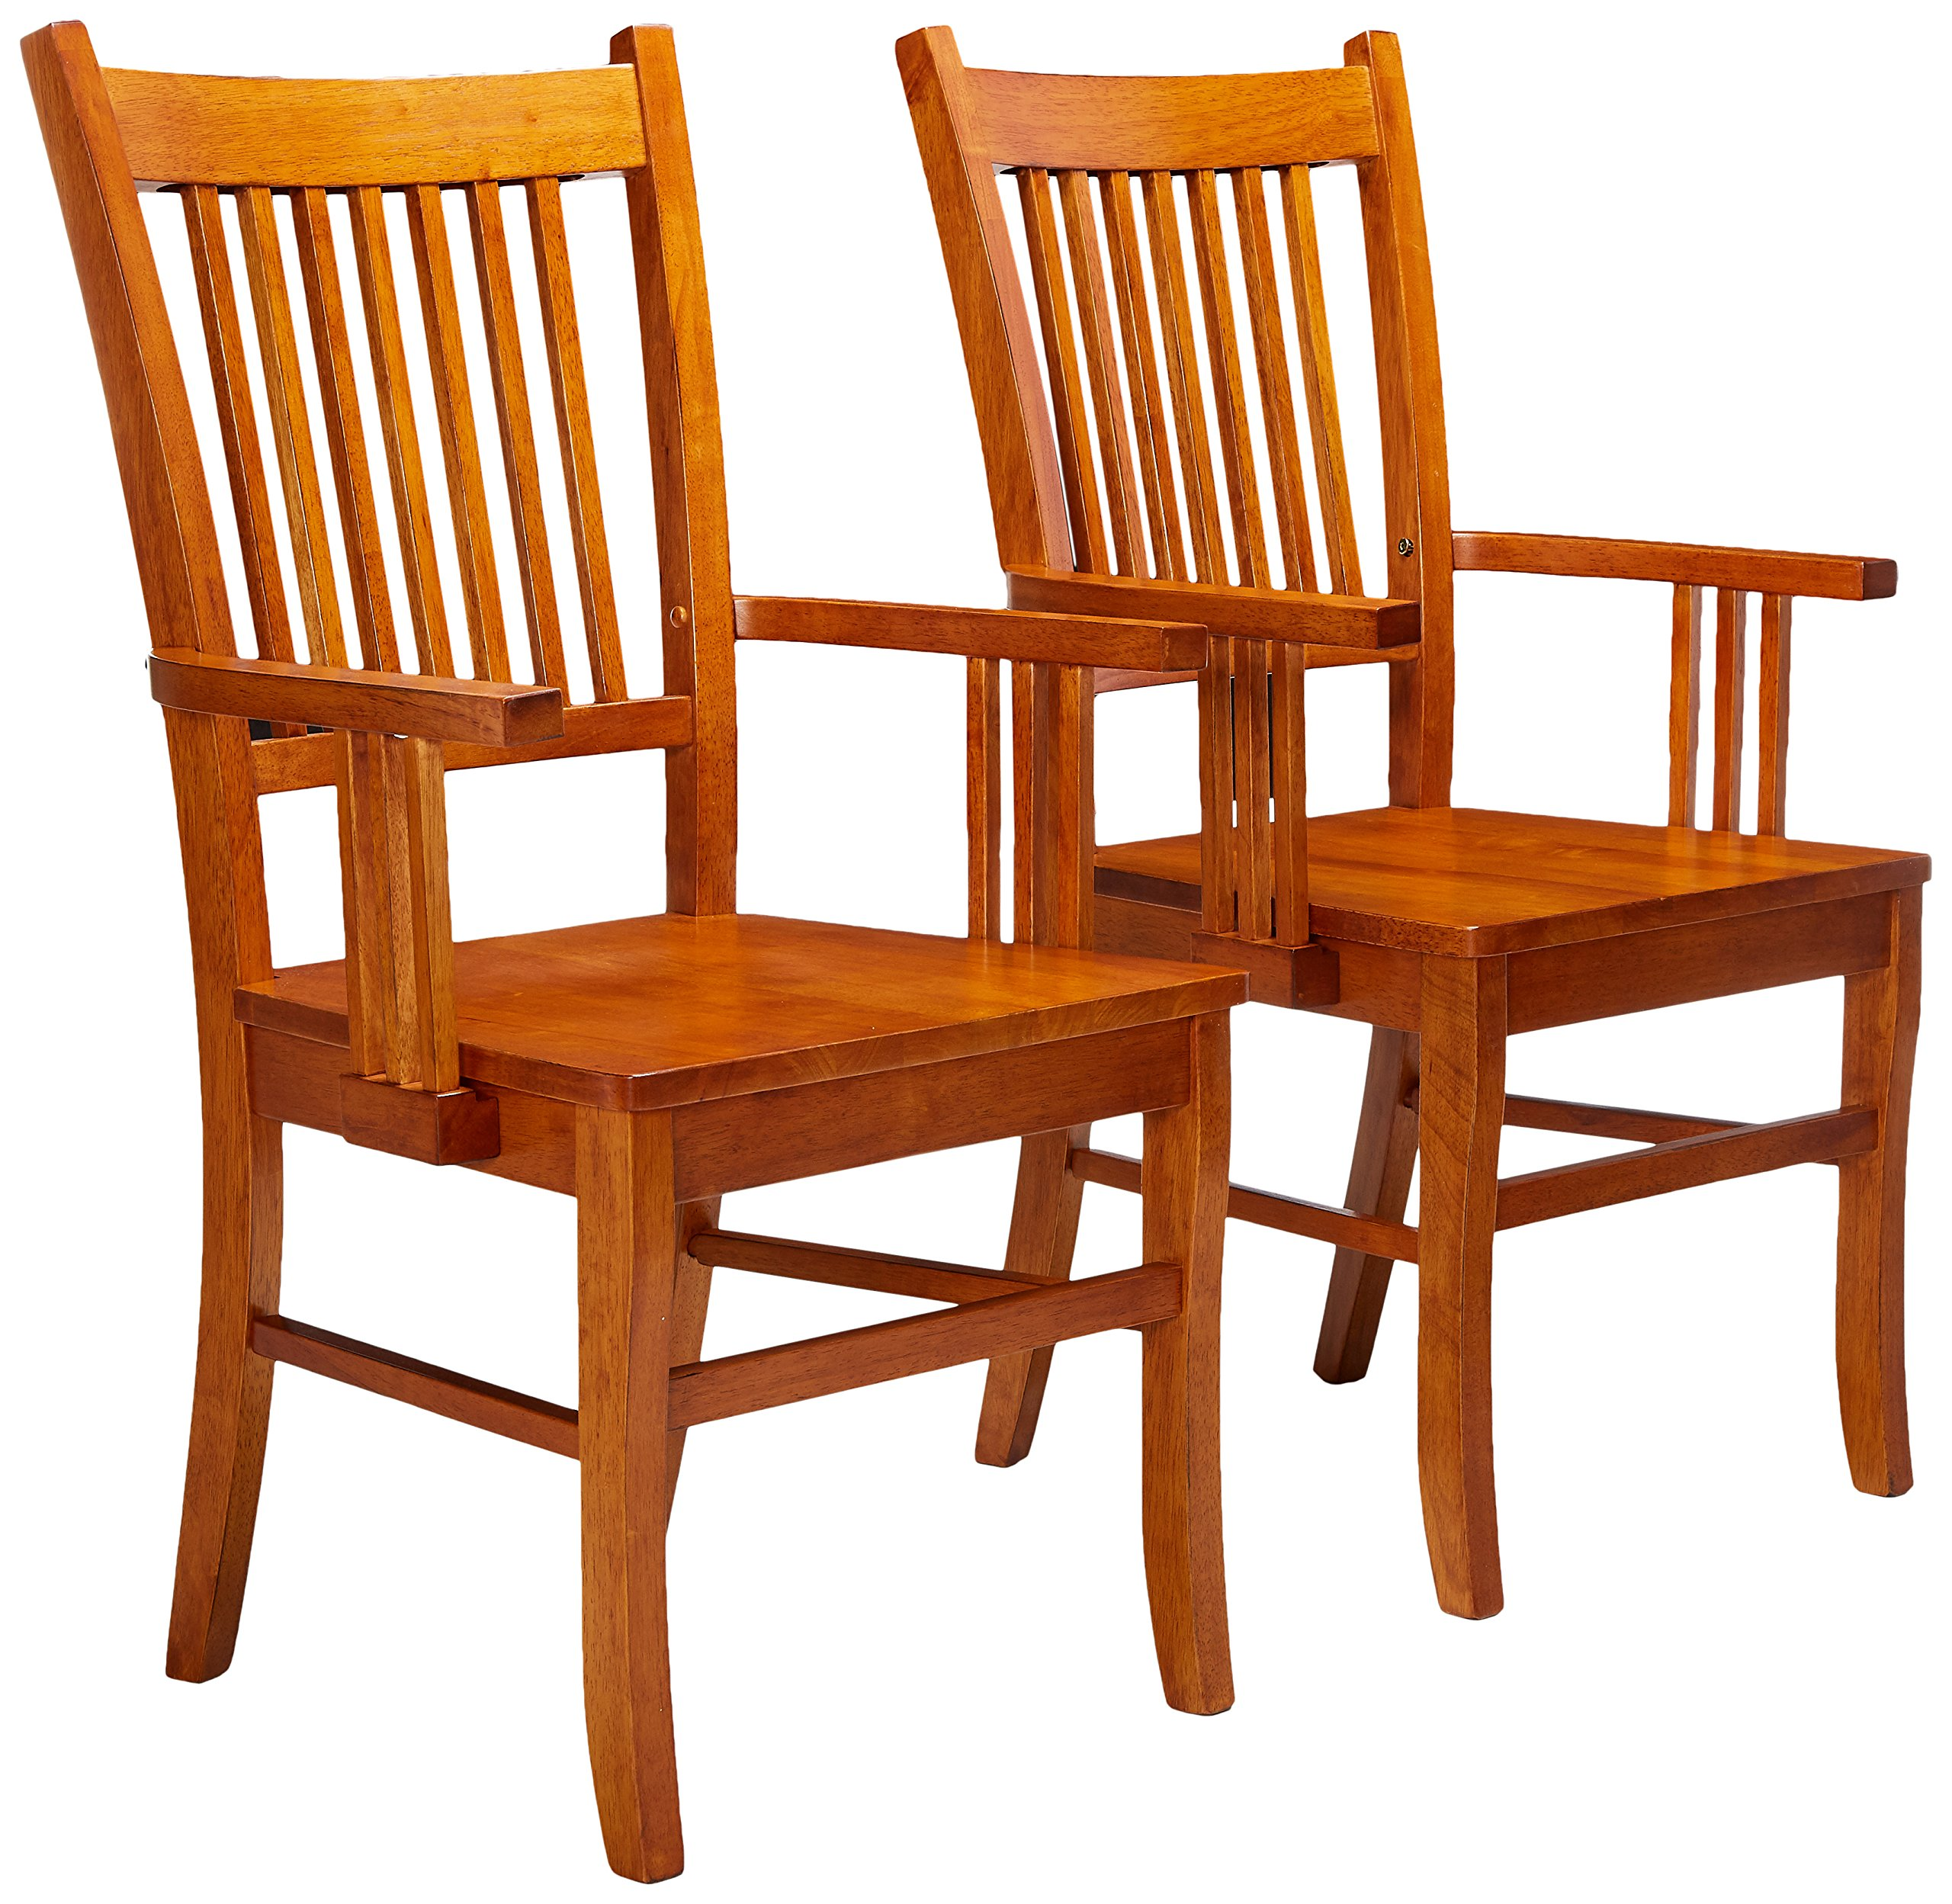 Marbrisa Slat Back Arm Chairs Sienna Brown (Set of 2)